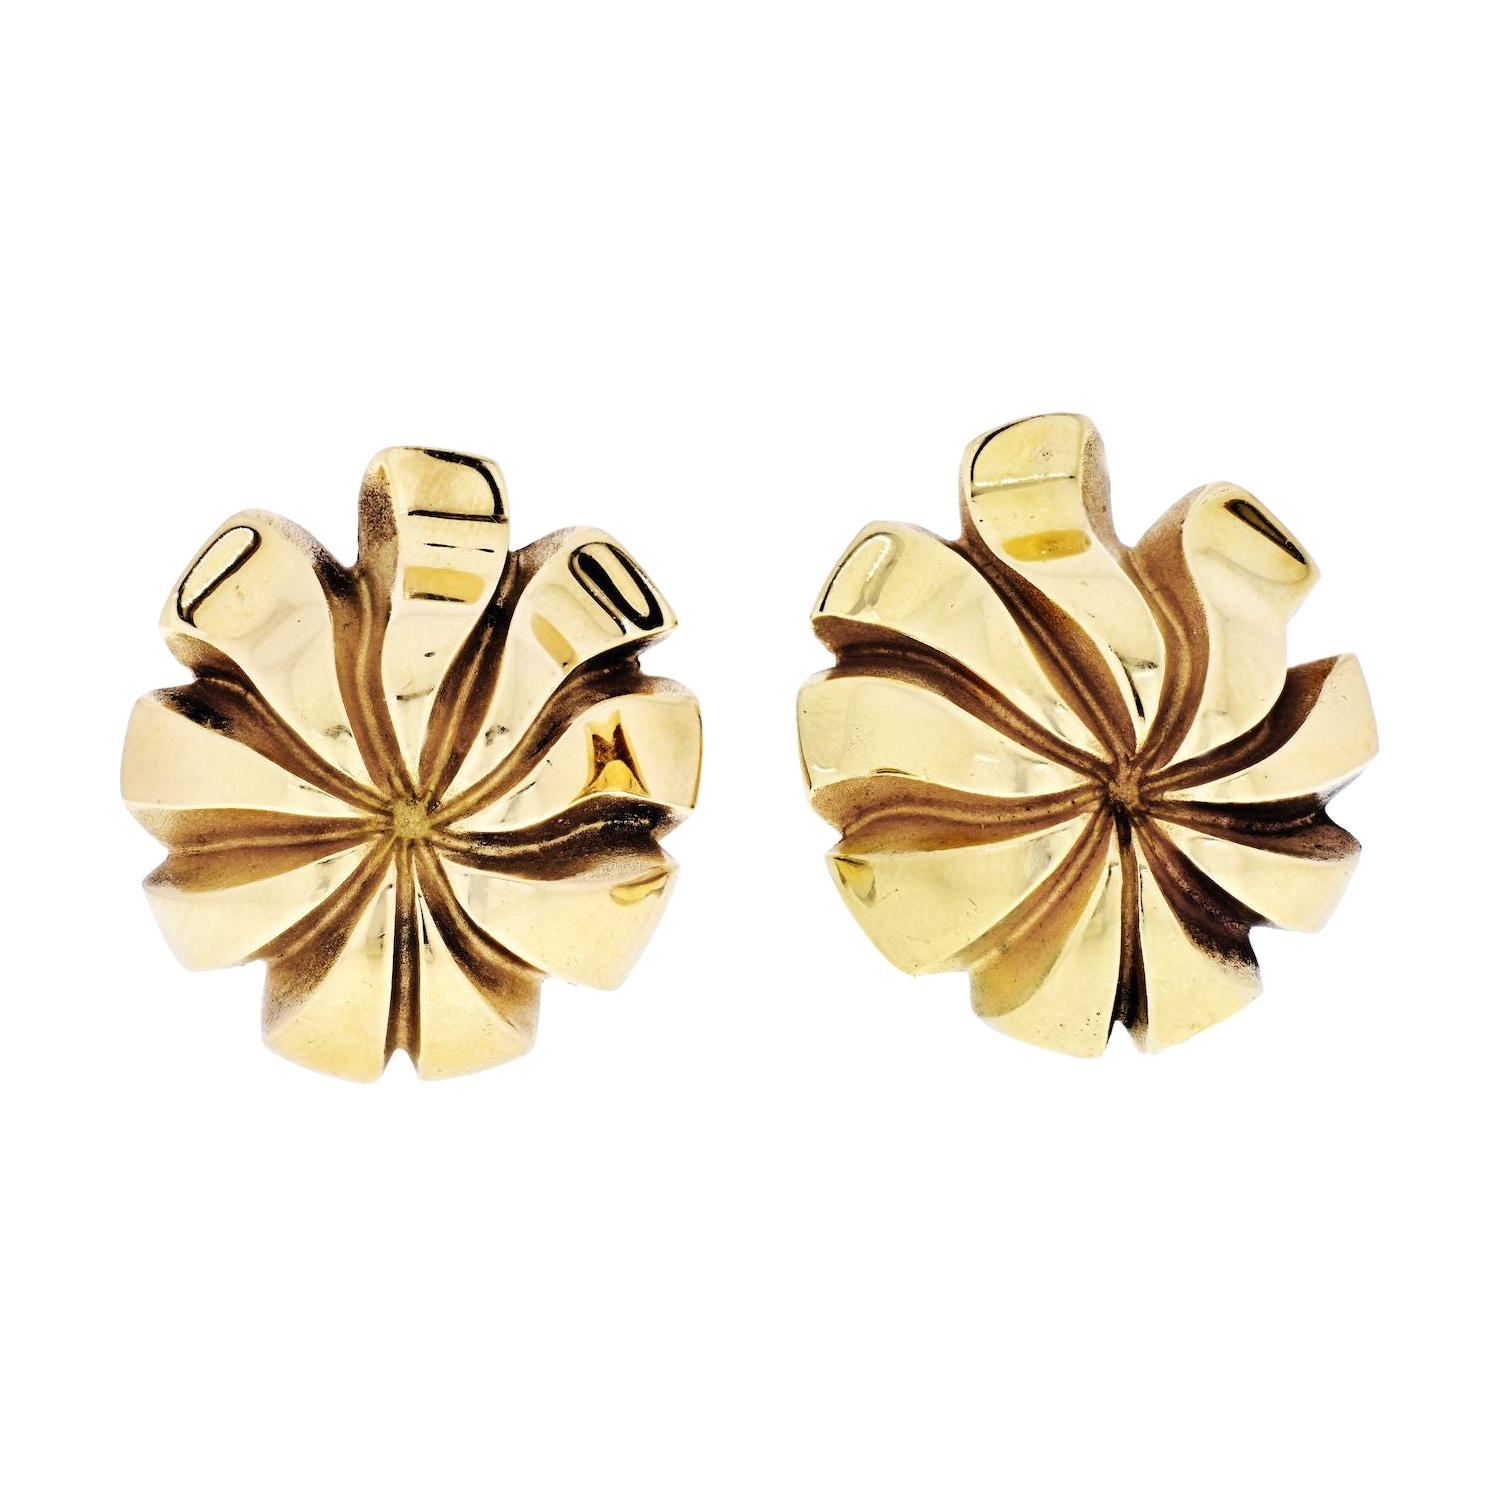 Tiffany & Co. 18k Yellow Gold Floral style Vintage Earrings